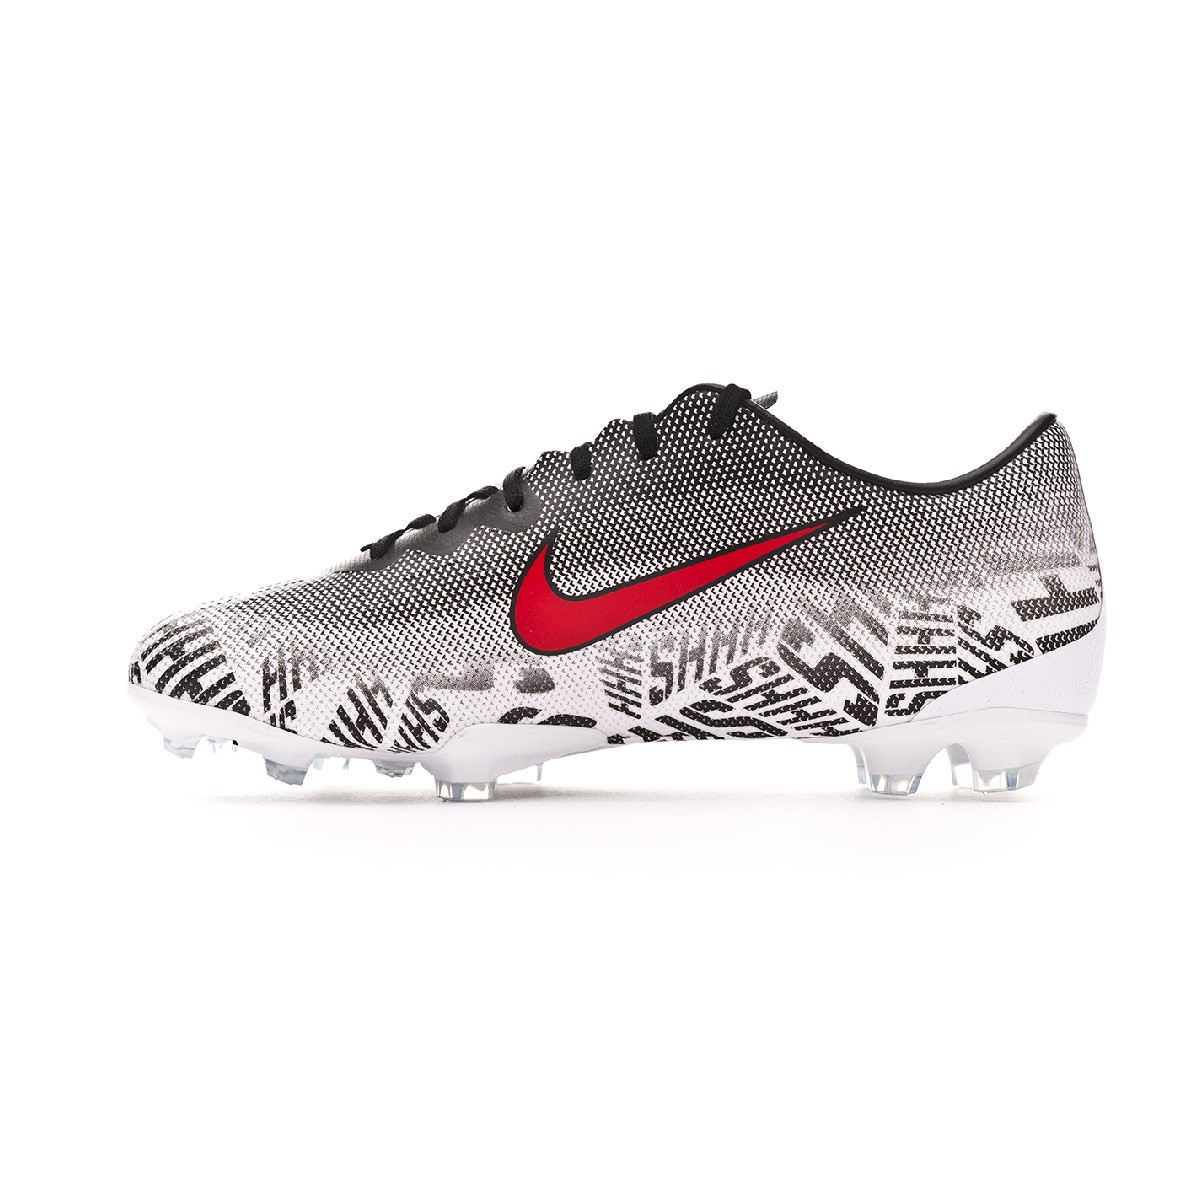 534fc1afc Football Boots Nike Kids Mercurial Vapor XII Elite Neymar Jr FG  White-Challenge red-Black - Tienda de fútbol Fútbol Emotion